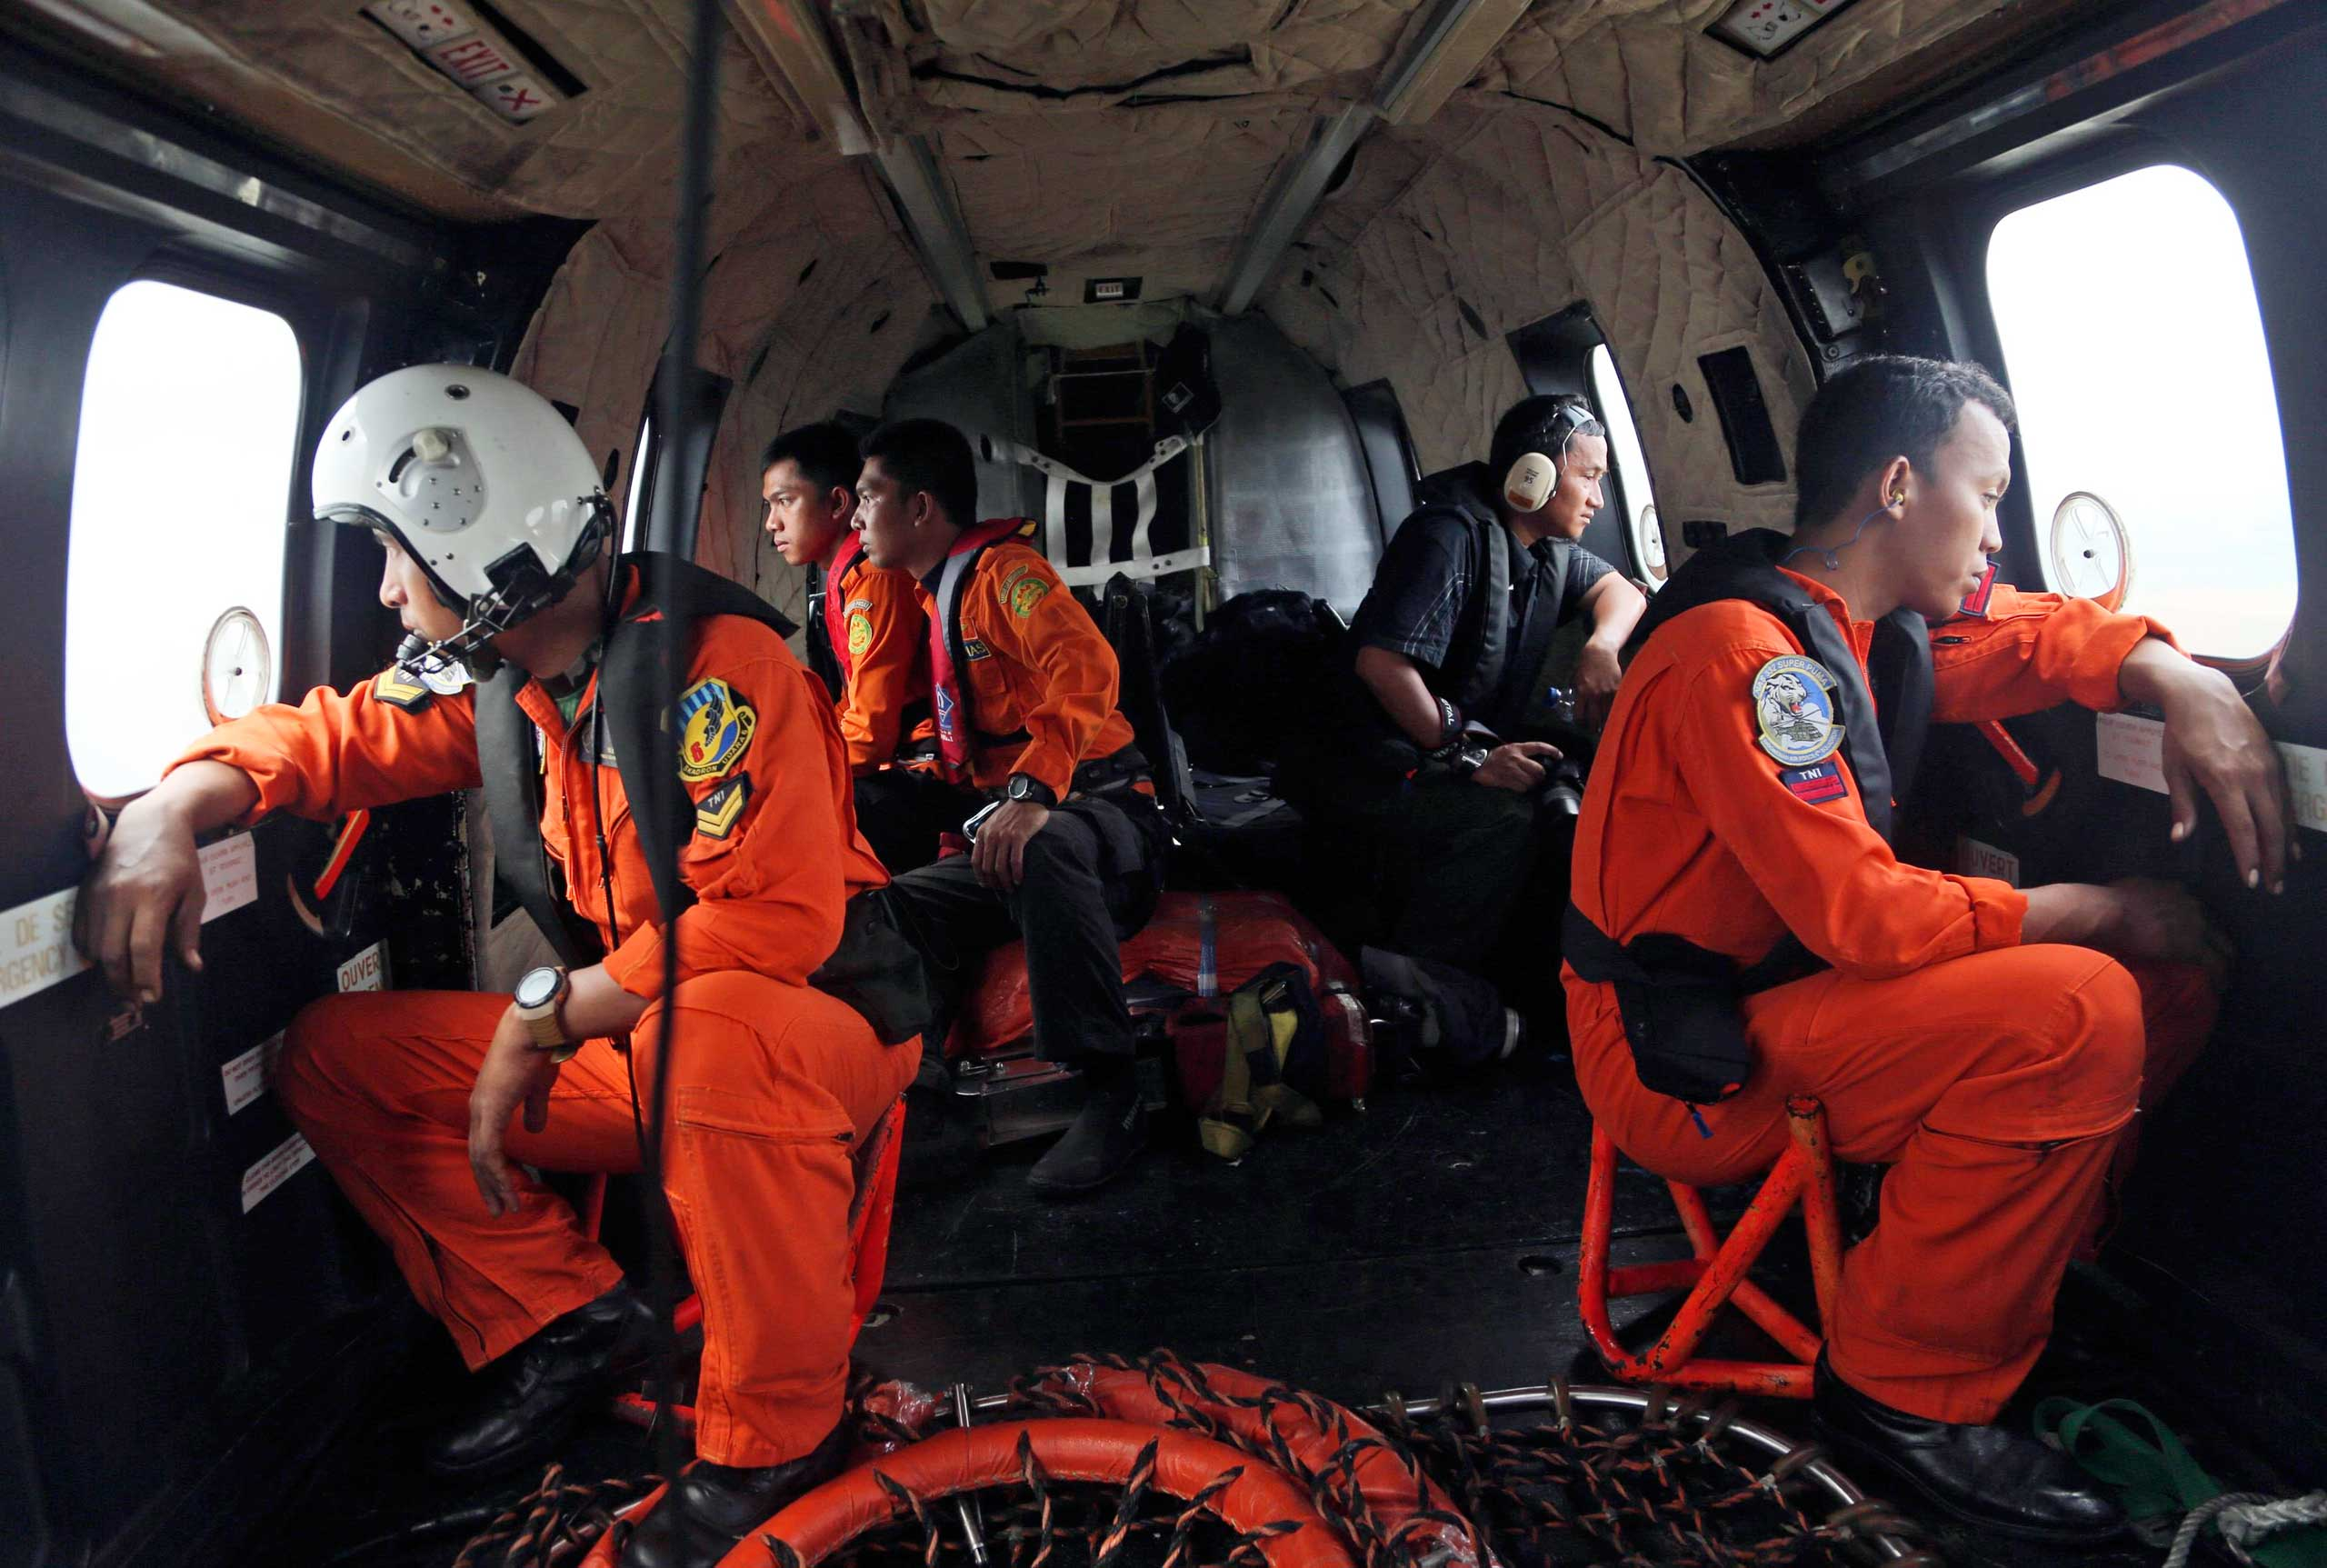 Crewmembers of an Indonesian Air Force NAS 332 Super Puma helicopter search for the victims and wreckage of AirAsia flight QZ 8501 over the Java Sea, Indonesia, Jan. 5, 2015.